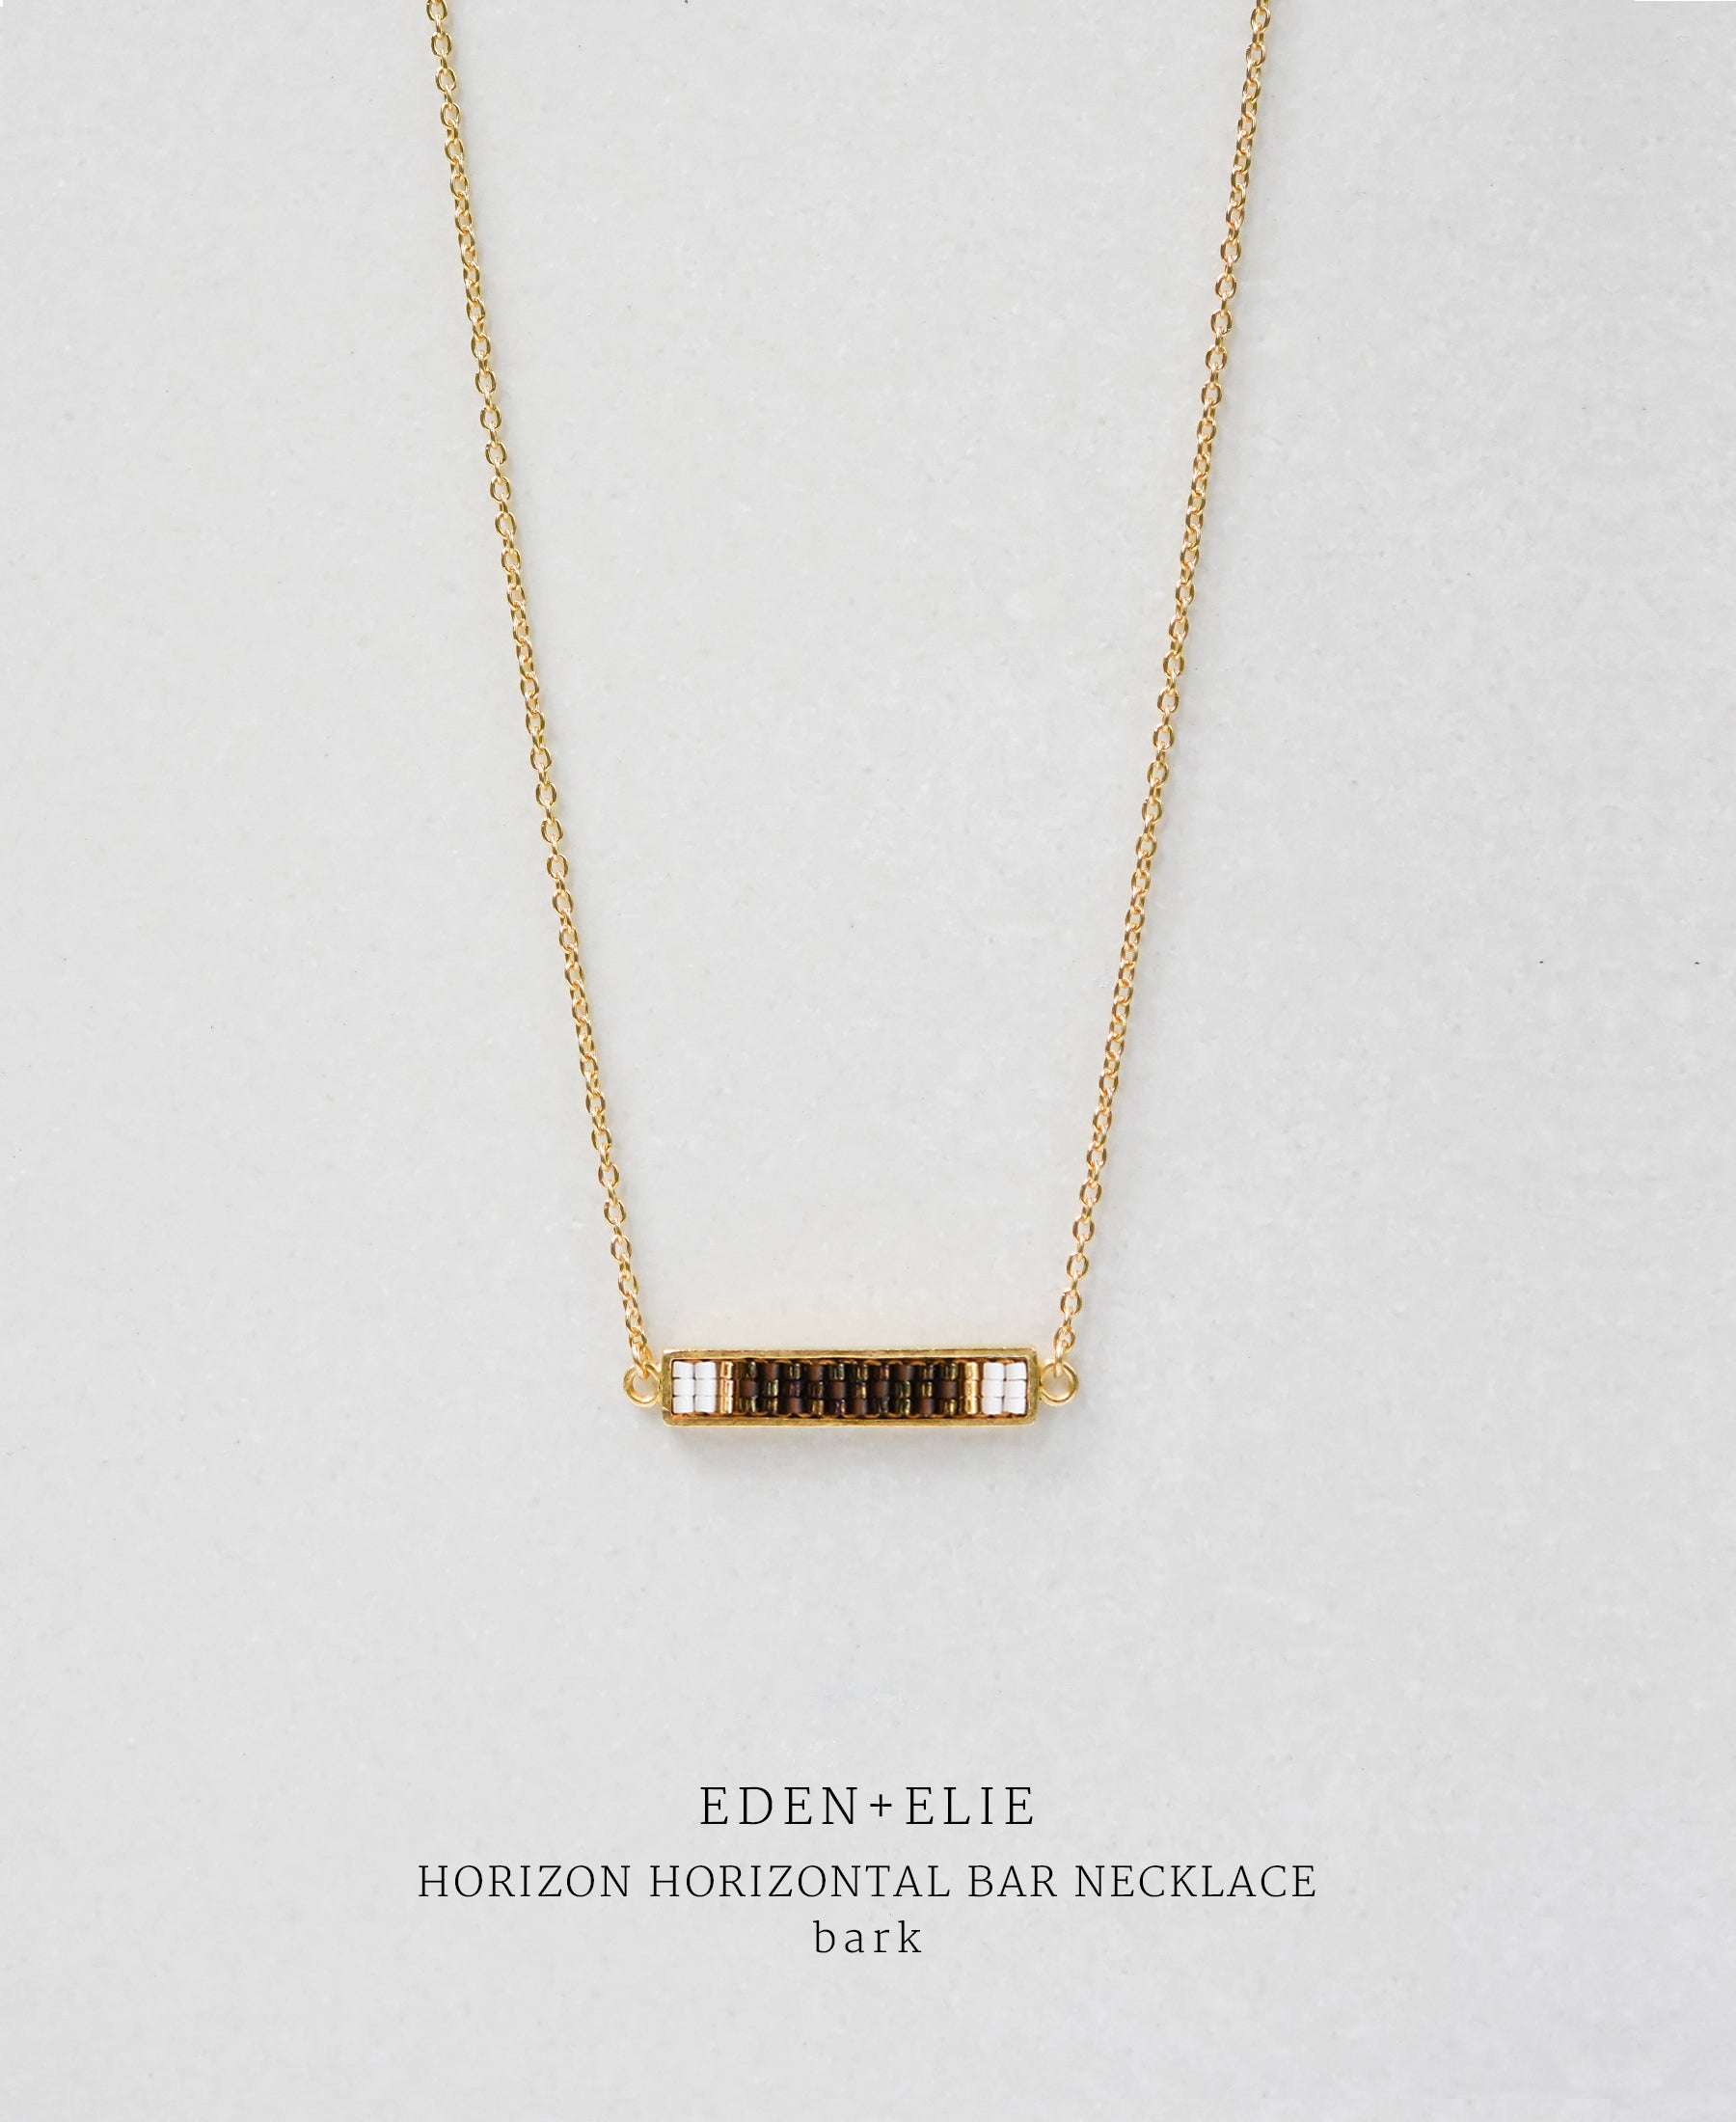 EDEN + ELIE Horizon Horizontal bar necklace - bark brown